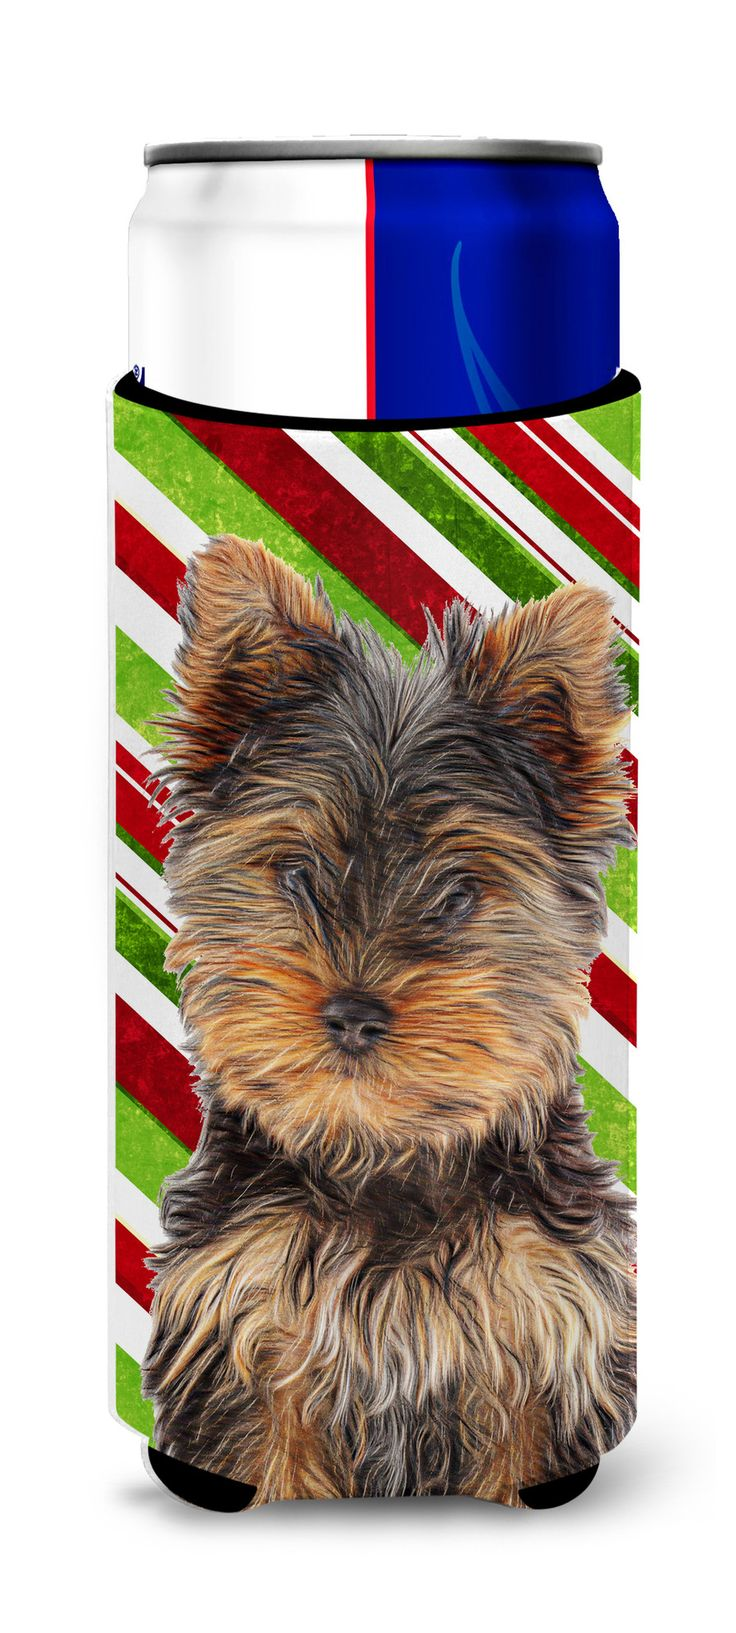 Candy Cane Holiday Christmas Yorkie Puppy / Yorkshire Terrier Ultra Beverage Insulators for slim cans KJ1174MUK